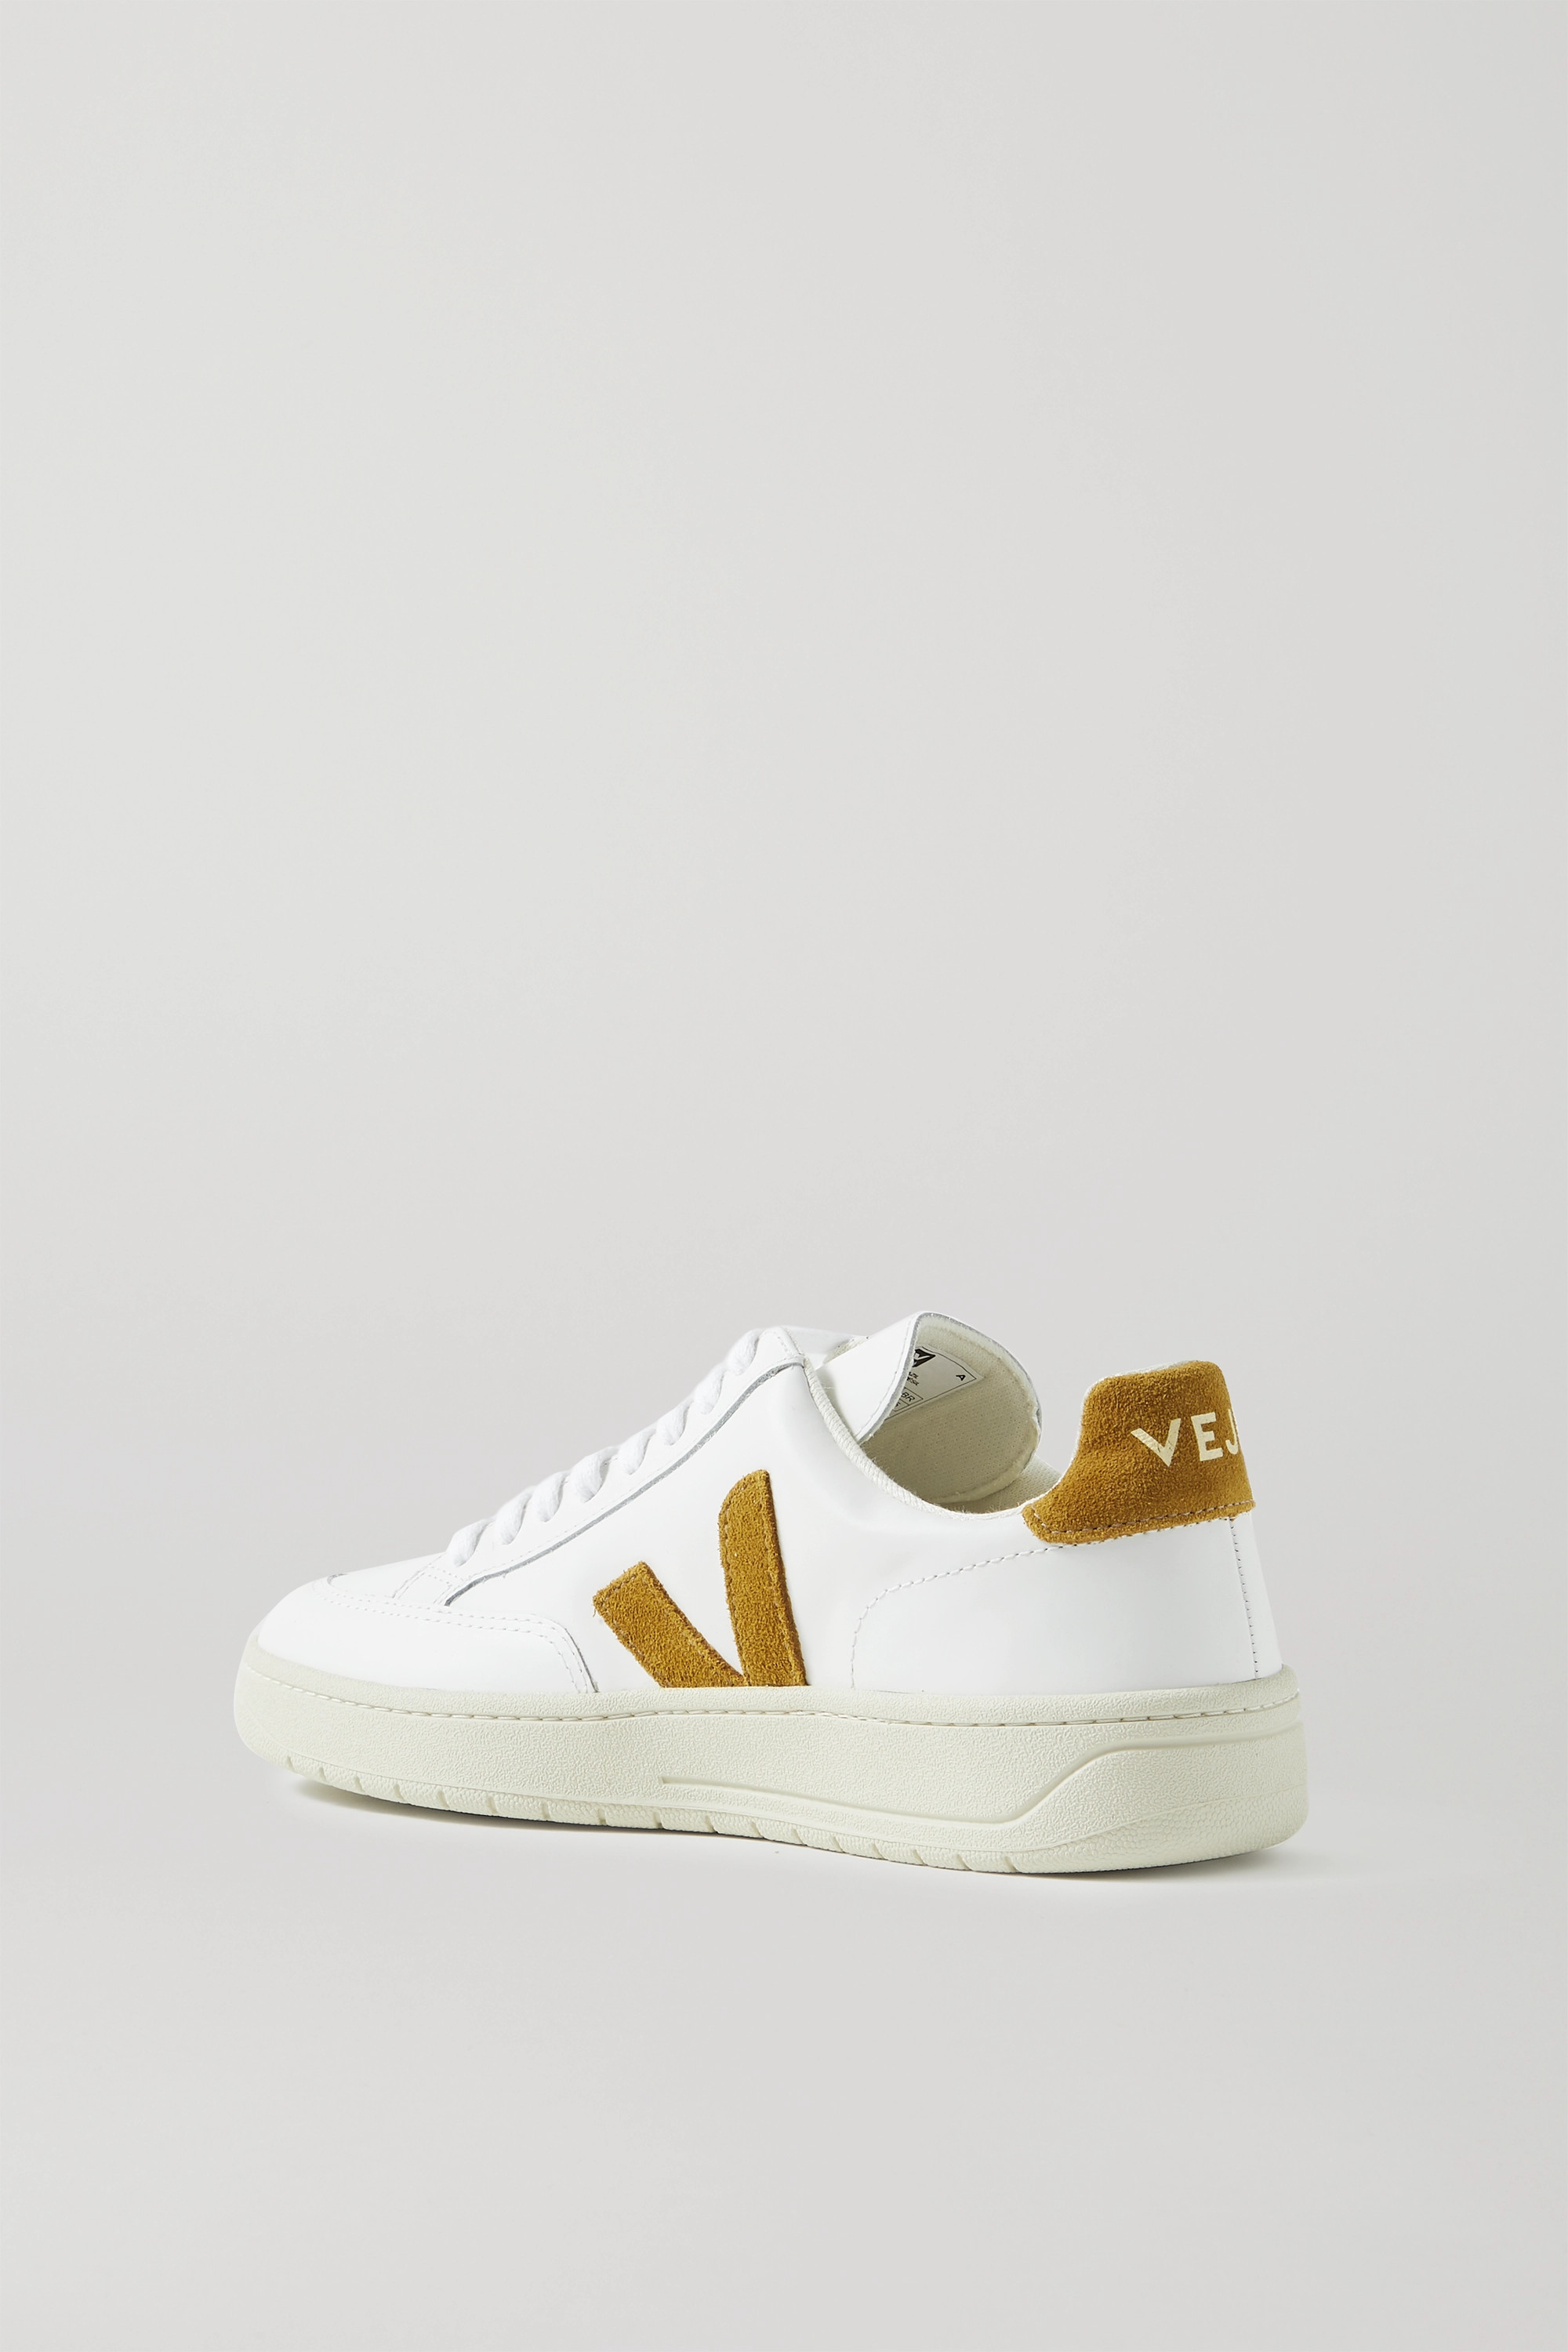 VEJA + NET SUSTAIN V-12 suede-trimmed leather sneakers